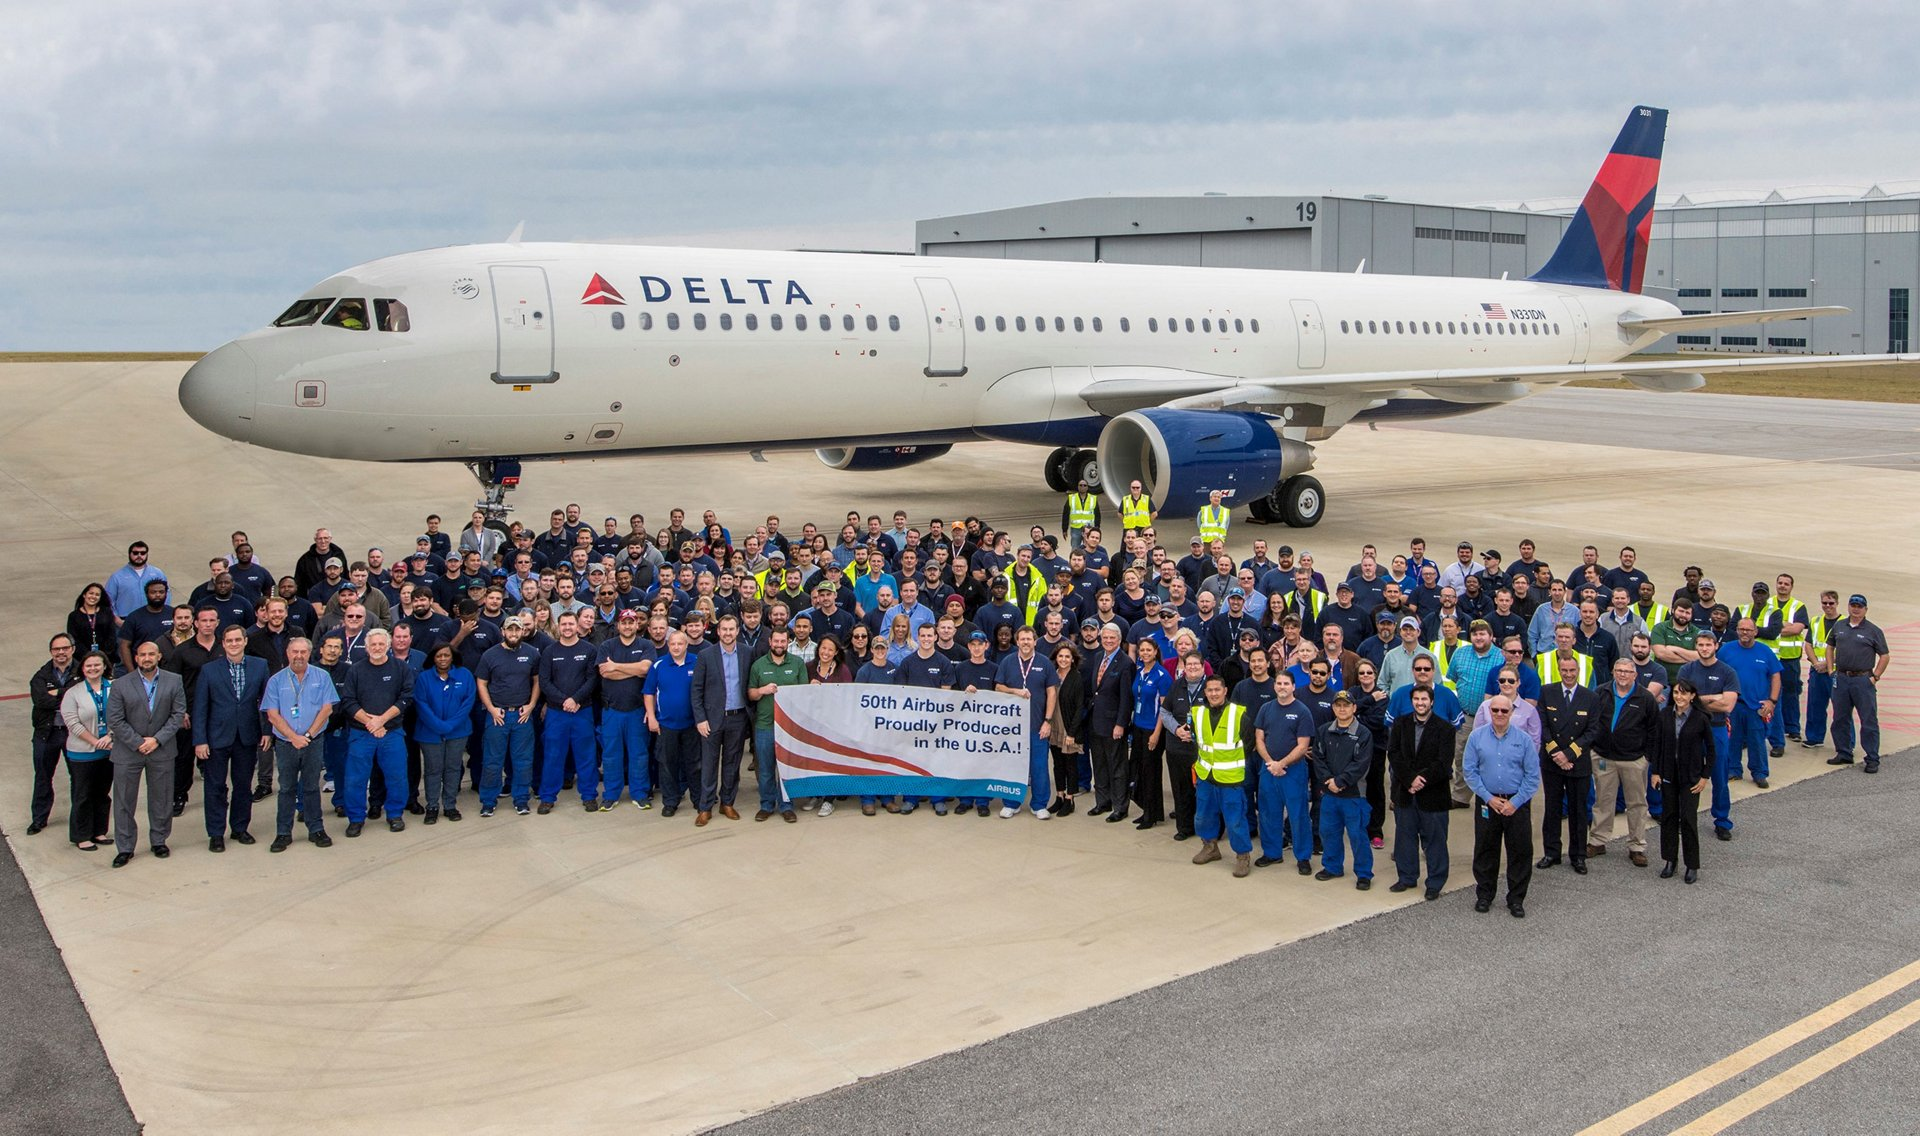 Team members at the Airbus U.S. Manufacturing Facility gather in front of the 50th jetliner delivered from Mobile, Alabama – an A321 for Delta Air Lines, in a milestone that also meets the industrial site's goal of reaching the production rate of four A320 Family jetliners per month